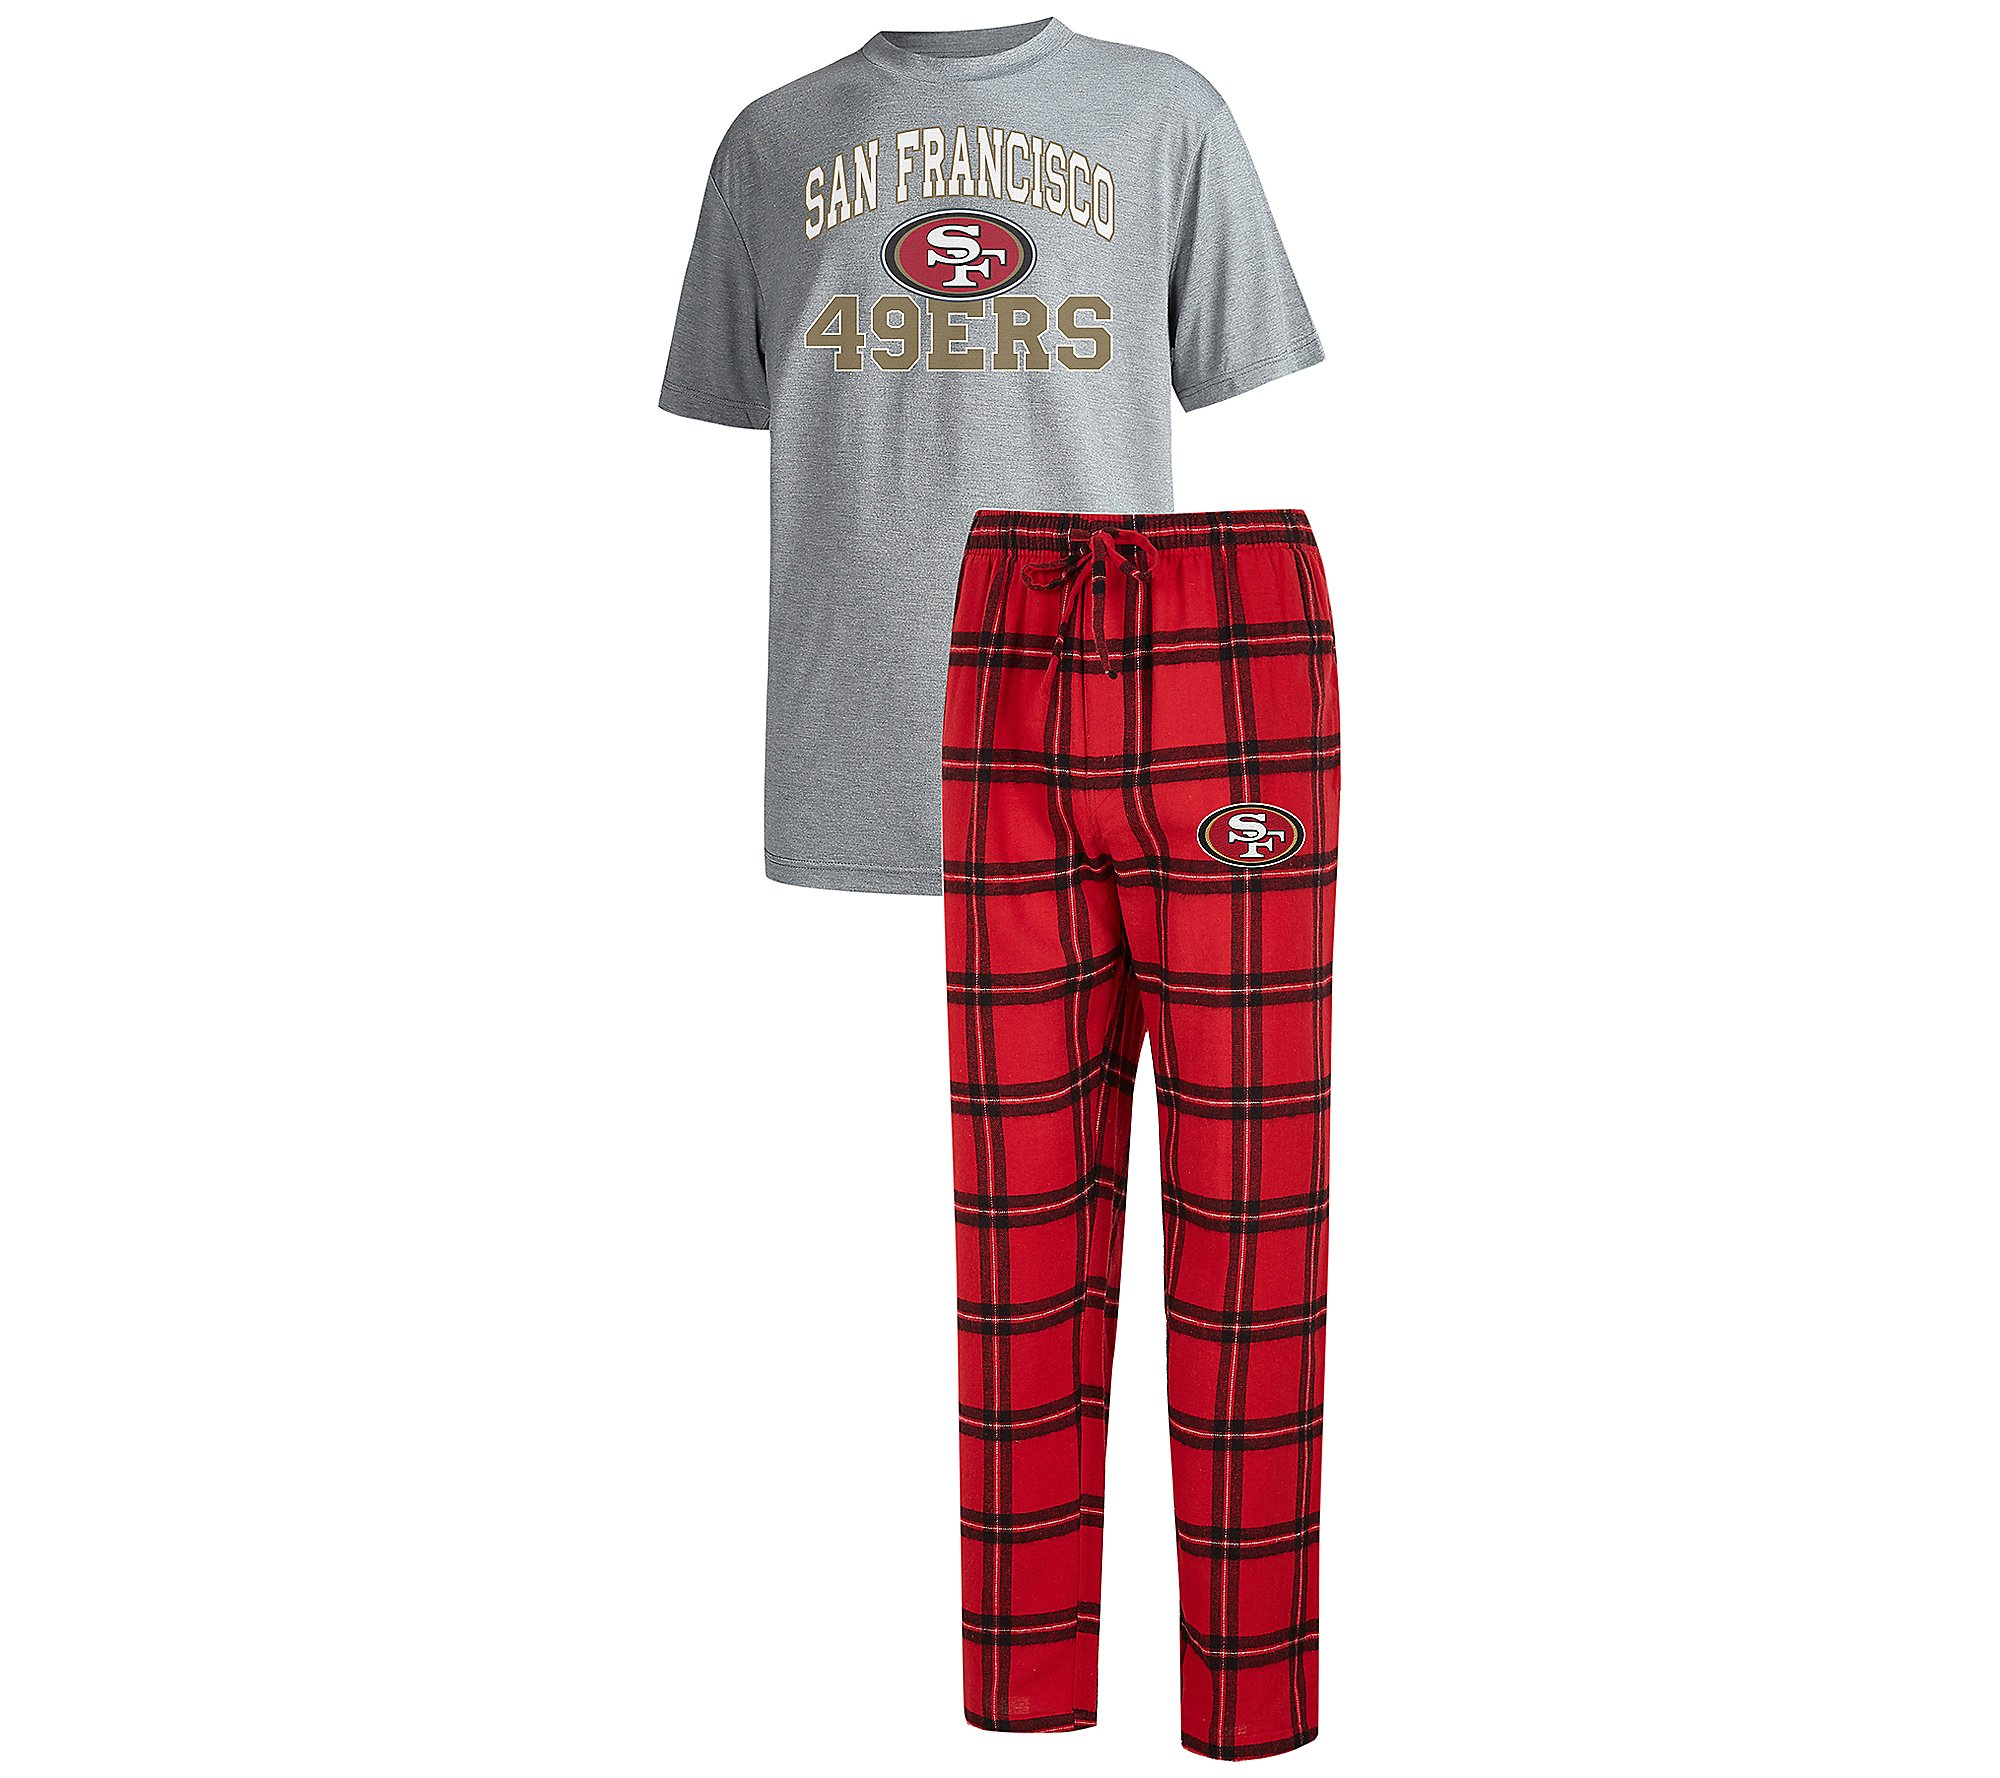 NFL Toddler Printed Sleepwear Pant